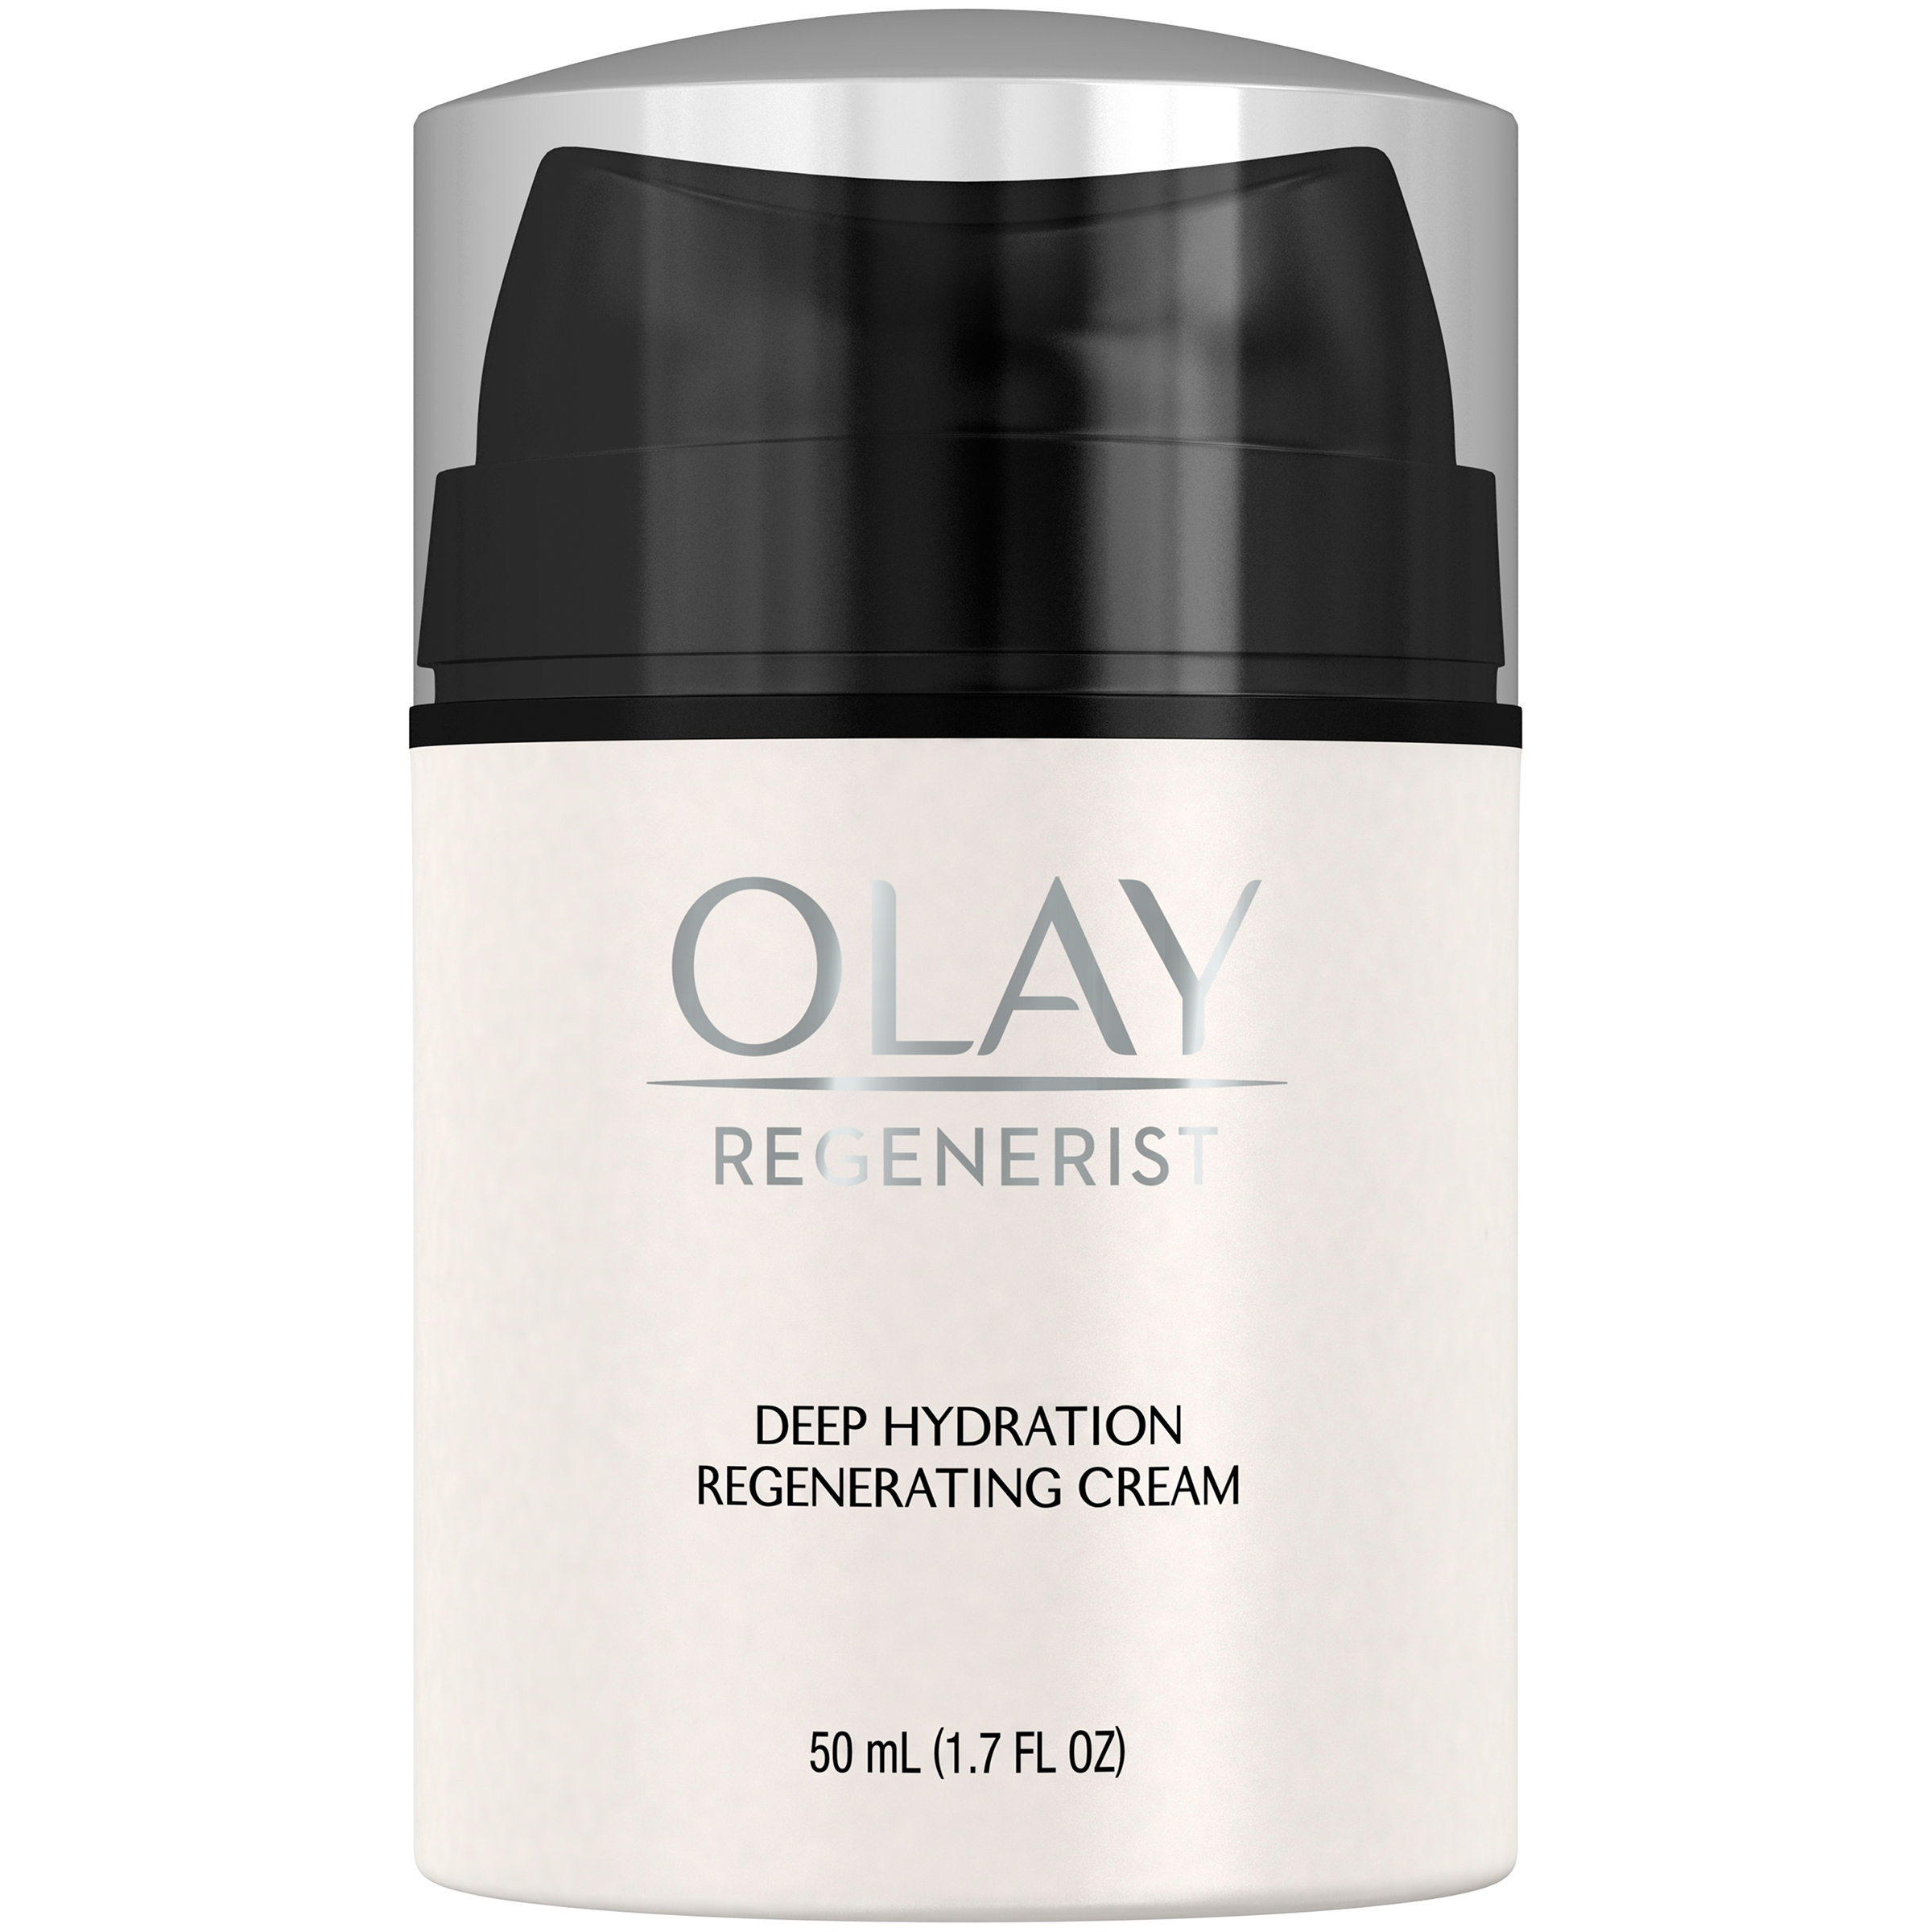 Olay Regenerist Deep Hydration Regenerating Cream Face Moisturizer, 1.7 fl oz